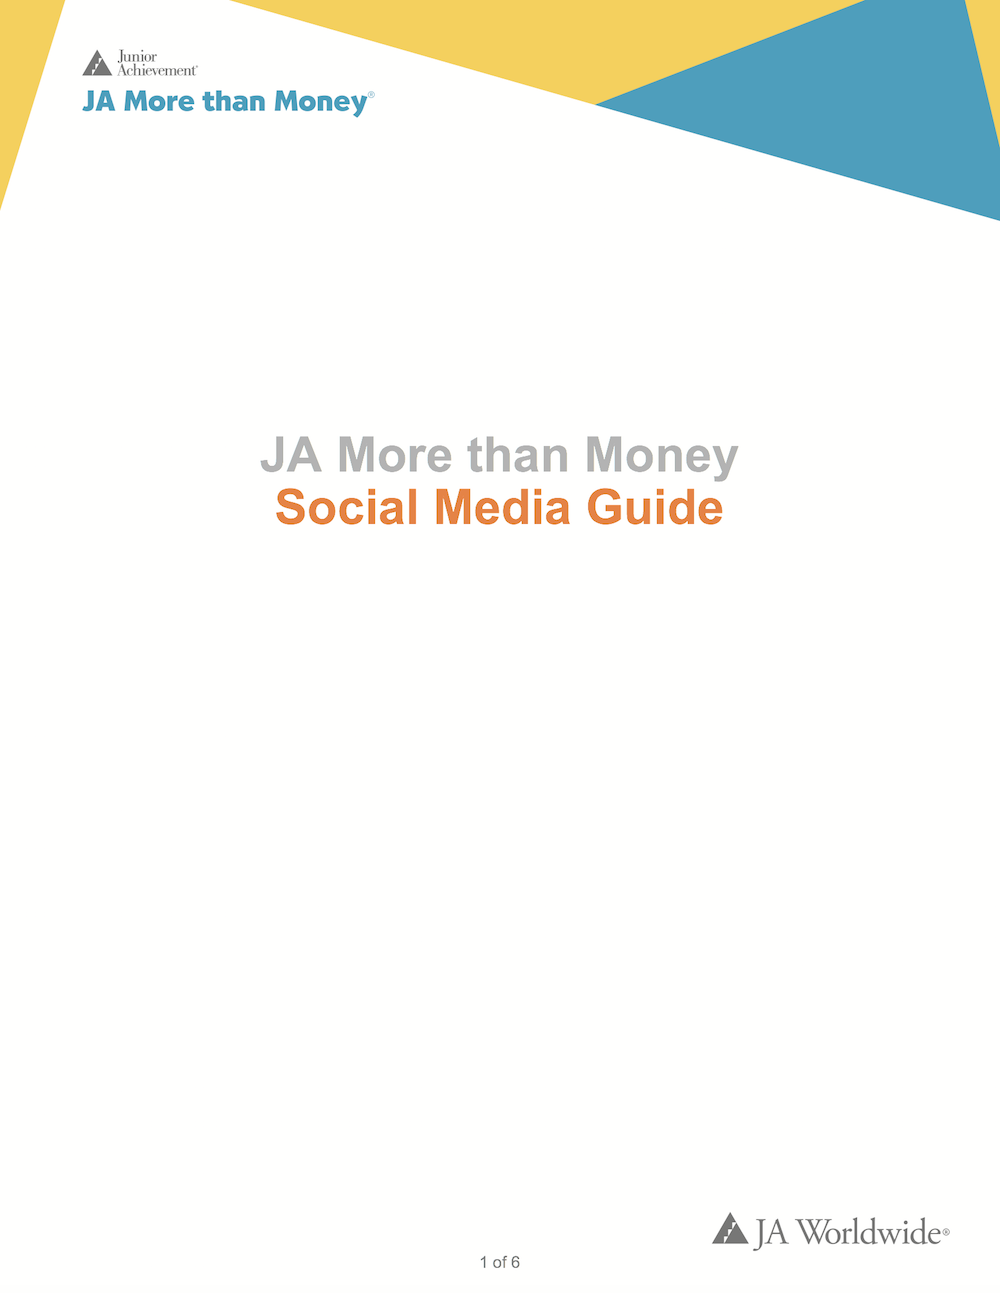 JA More than Money: Social Media Guide (download  Word document )